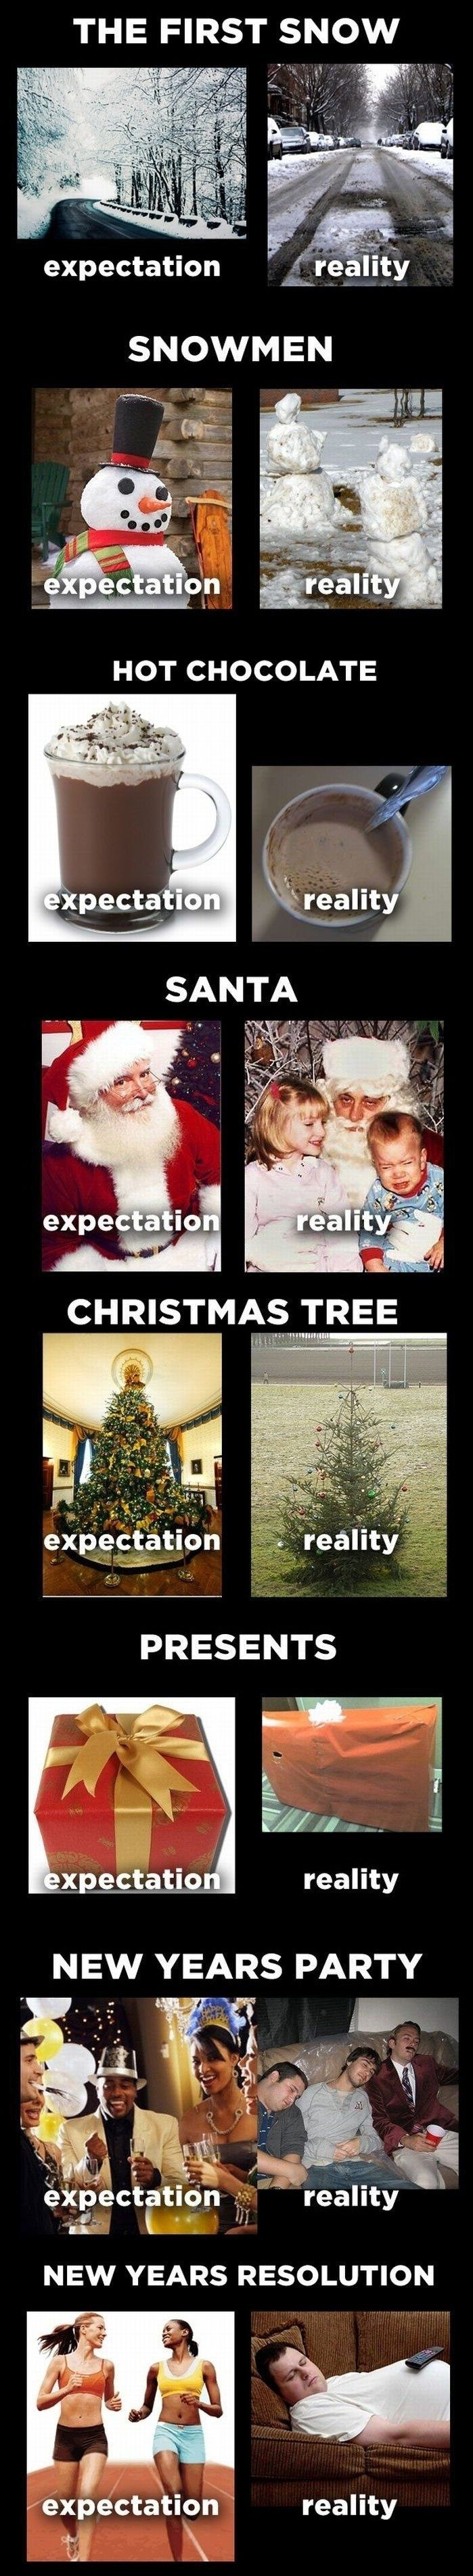 truth of the holidays.